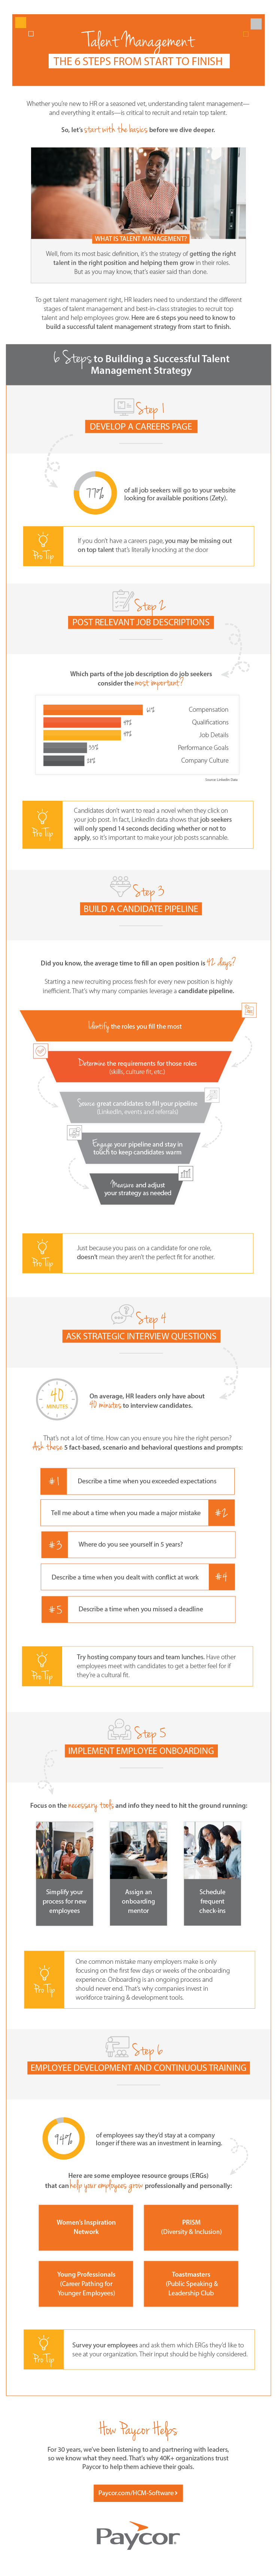 talent management start to finish infographic